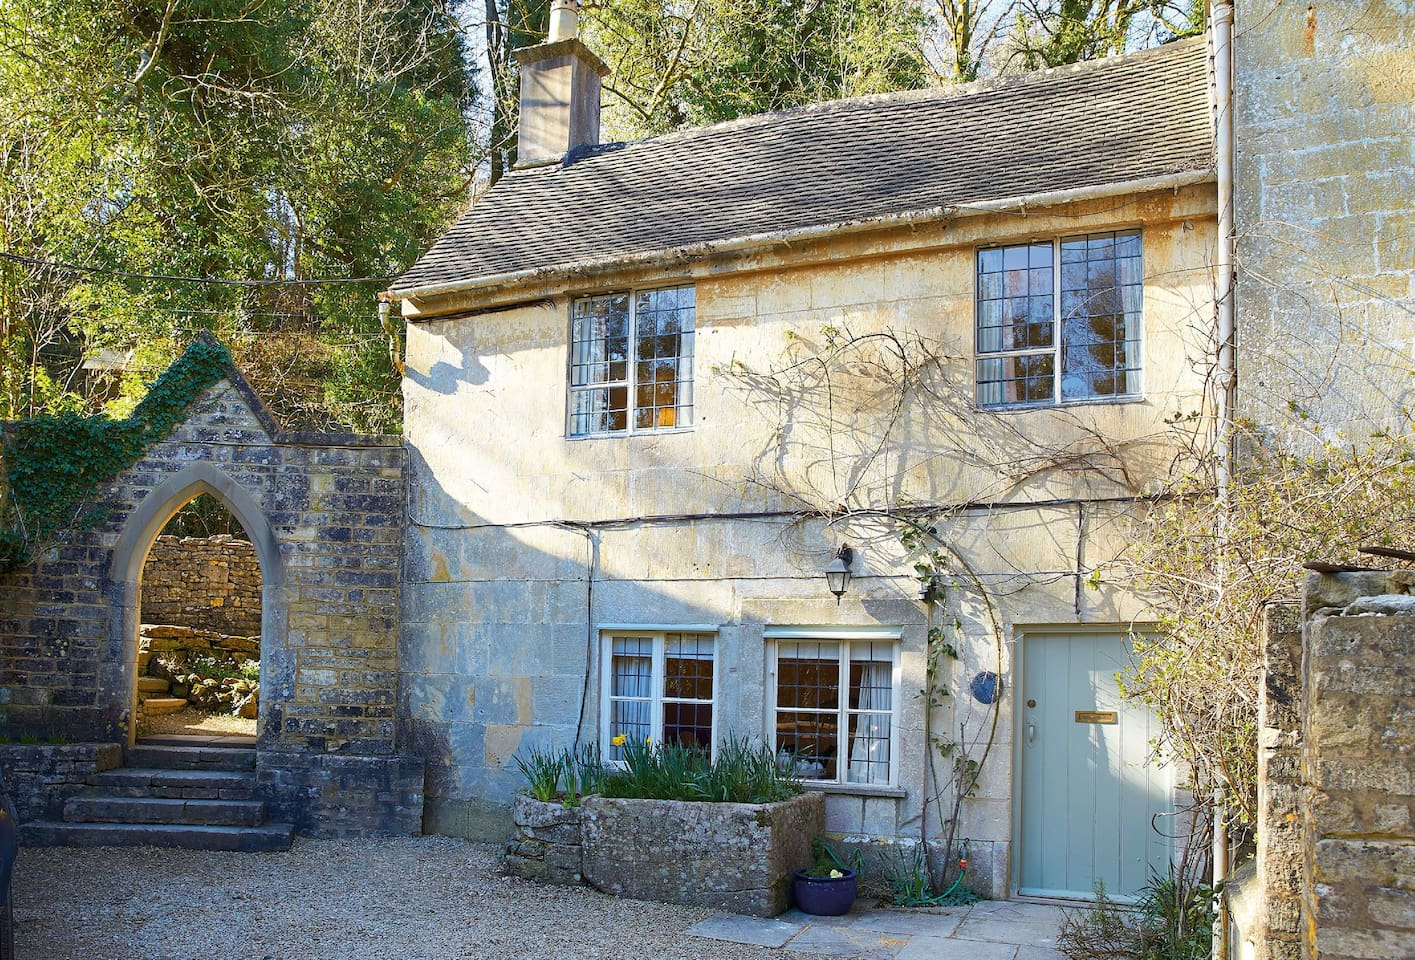 October Cottage with accommodation for three guests